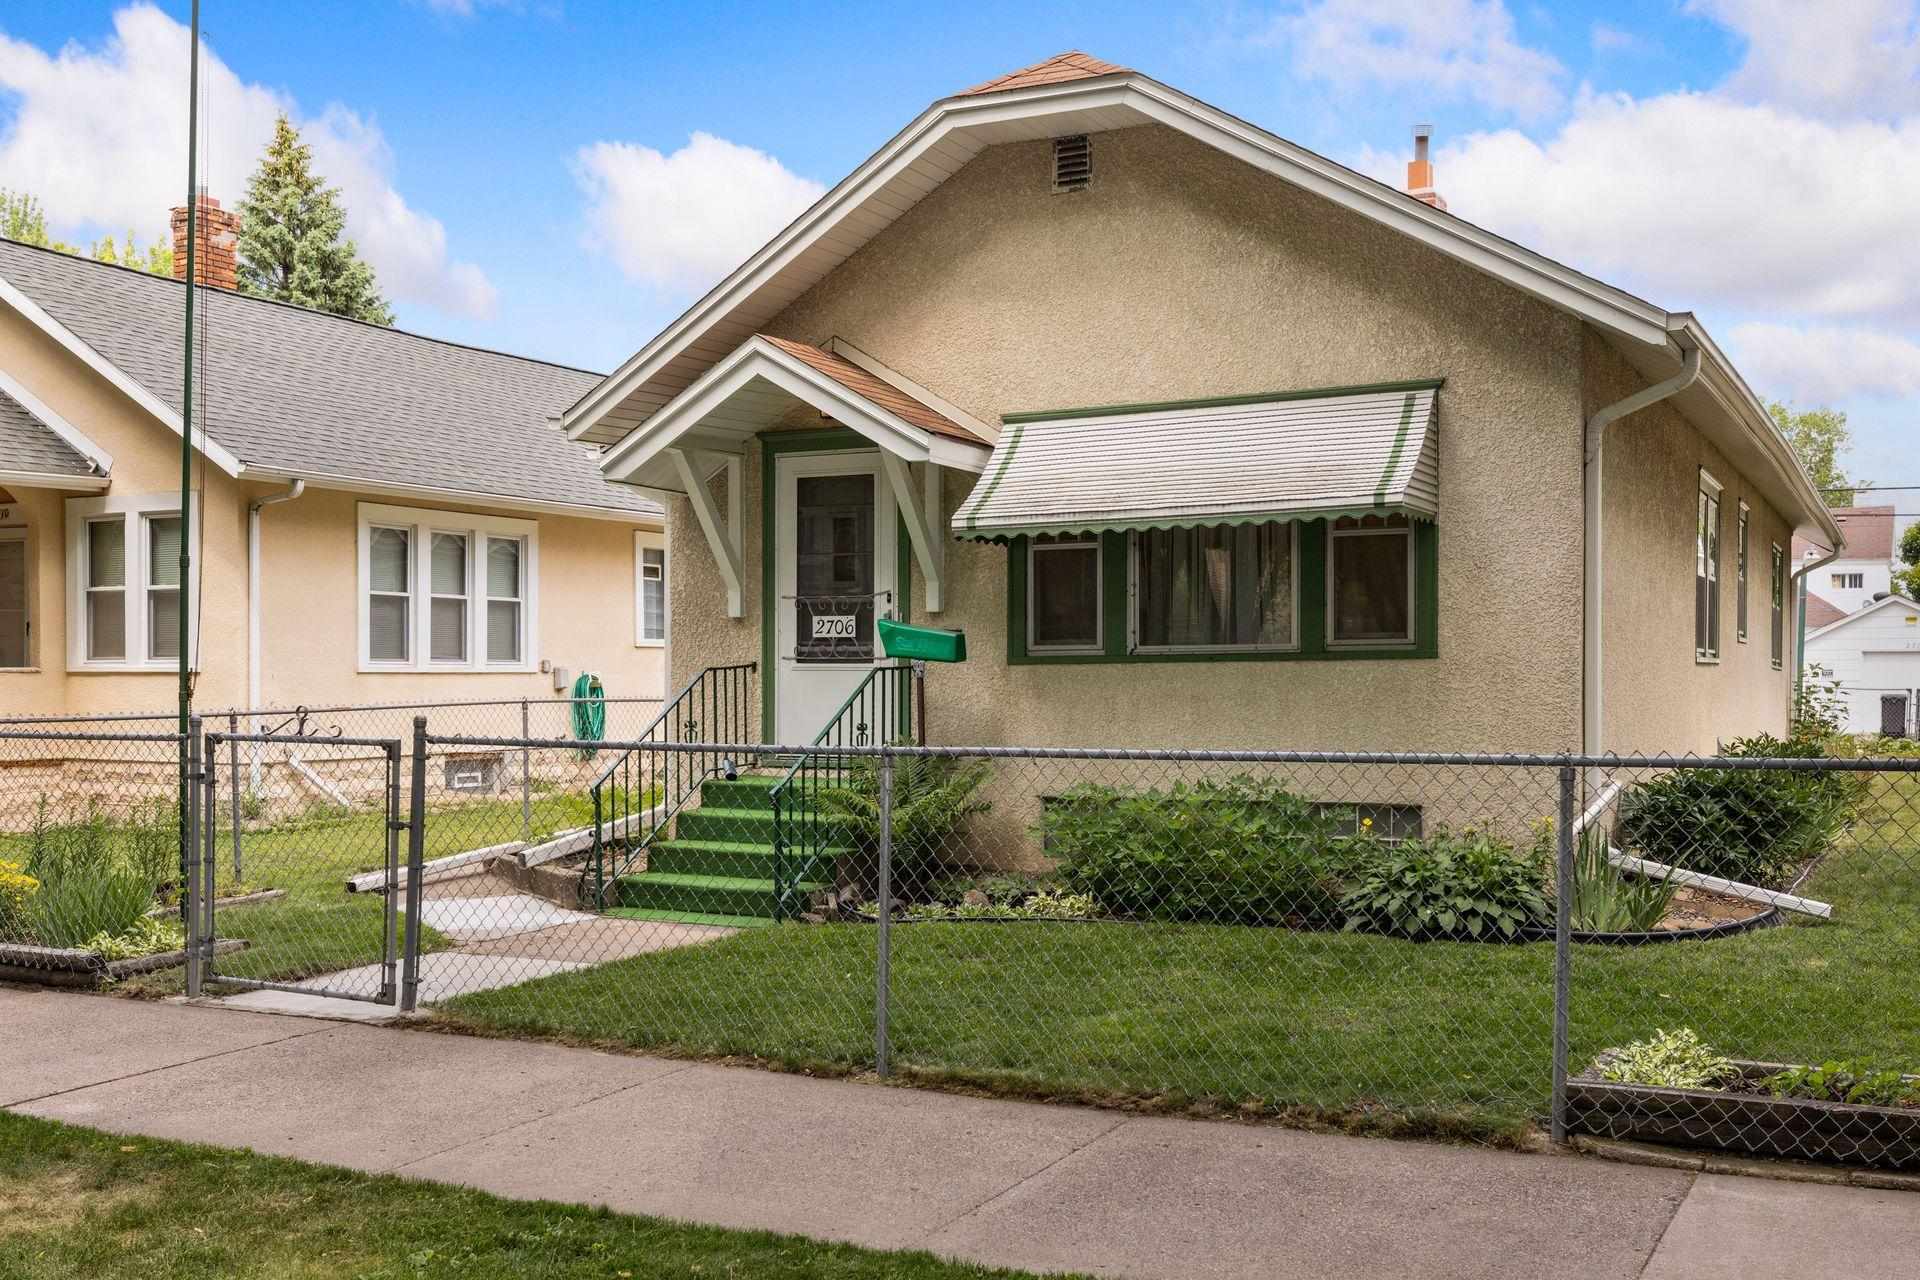 2706 Queen N Property Photo - Minneapolis, MN real estate listing